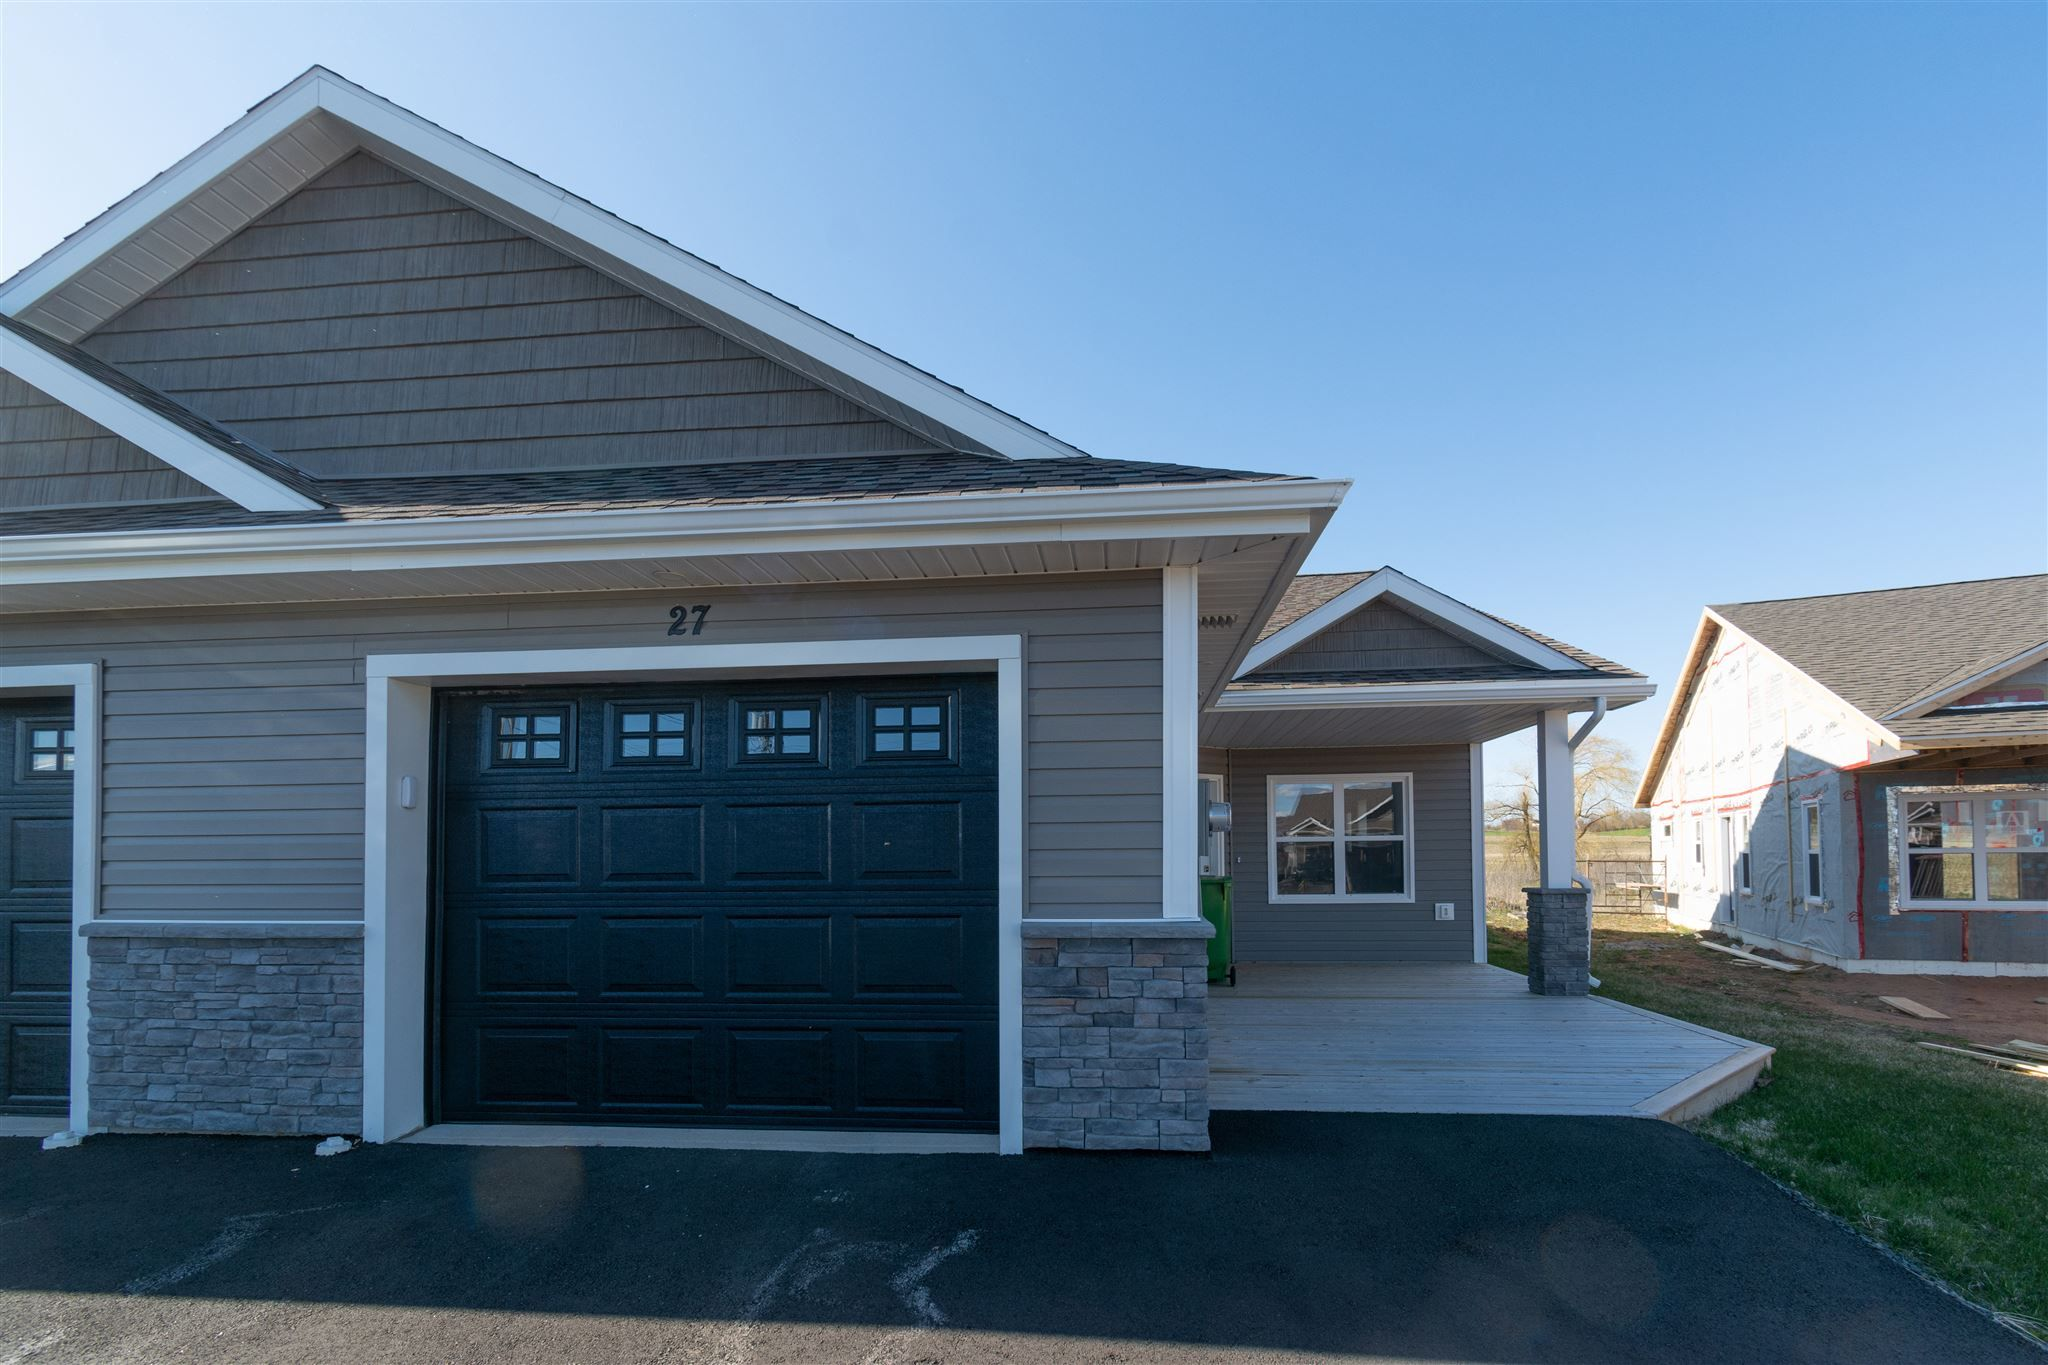 Main Photo: 27 Selena Court in Port Williams: 404-Kings County Residential for sale (Annapolis Valley)  : MLS®# 202109668